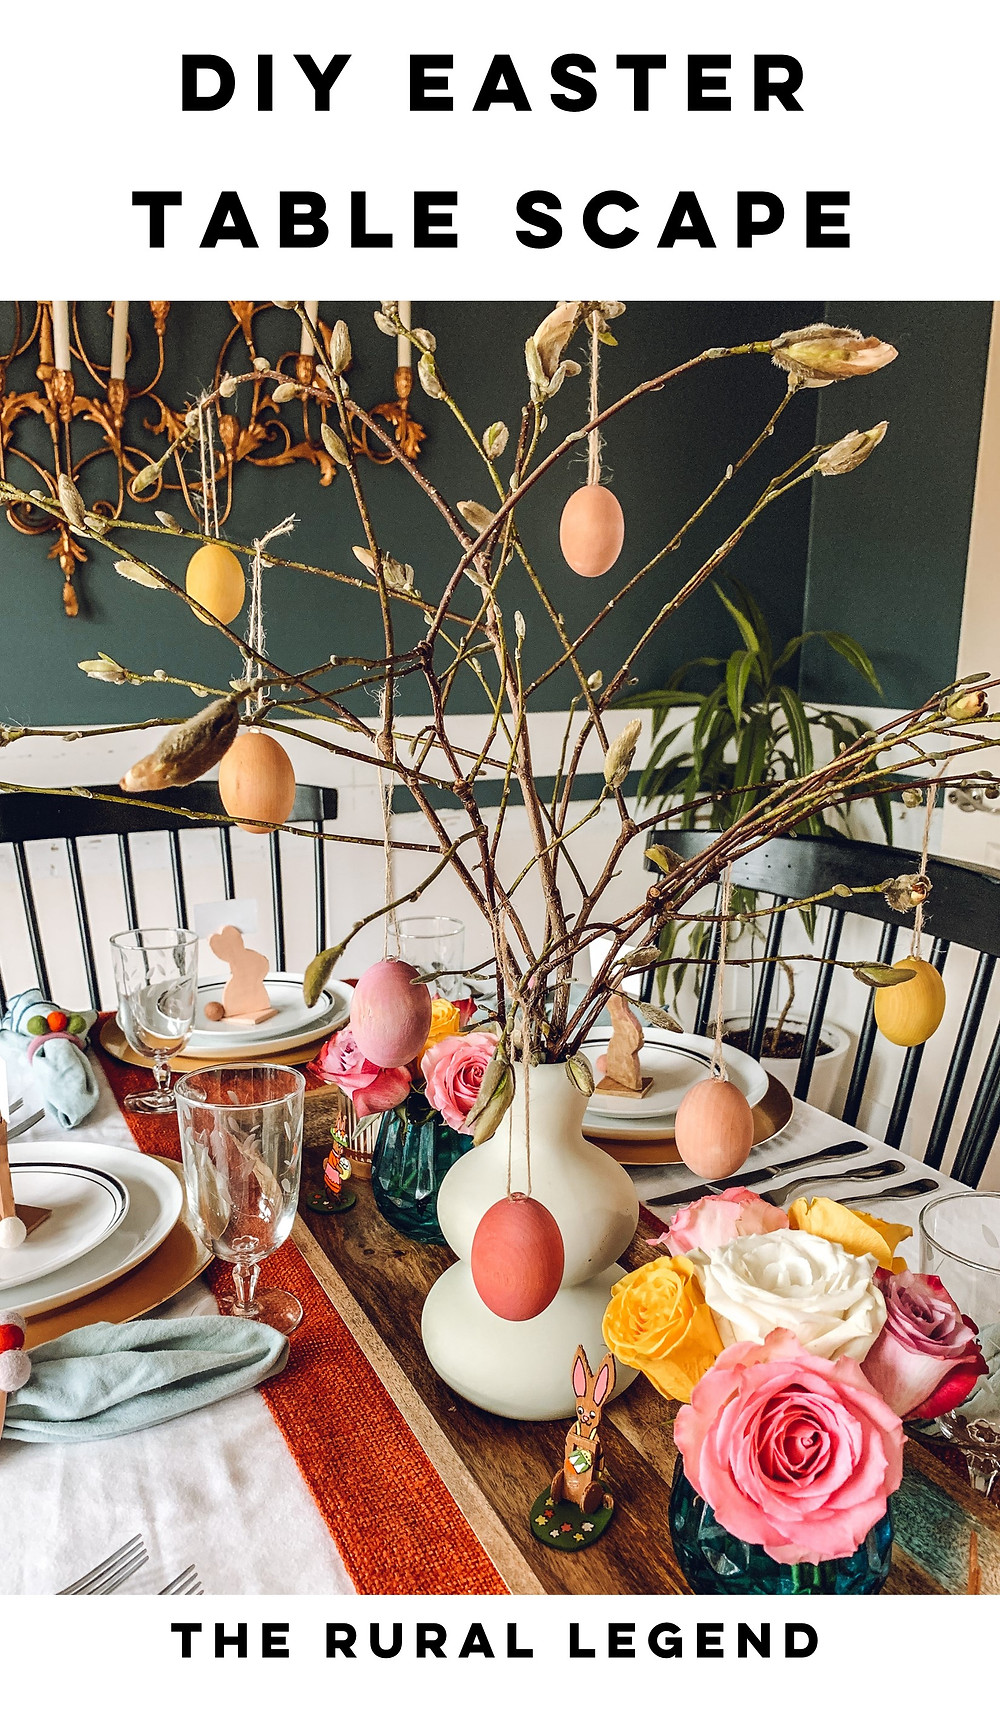 Easter table scape, easter diy, easter crafts, kid's easter crafts, family easter crafts, table scape diy, spring table scape, spring décor, easter décor, easter decorations, diy easter decorations, easter tree, diy napkin rings, diy place card holders, air dry clay crafts, pom pom crafts, wood crafts, natural dye recipes, natural dyed eggs, the rural legend, table scape styling, easter styling, diy blog, family blog, easter ideas, easter styling